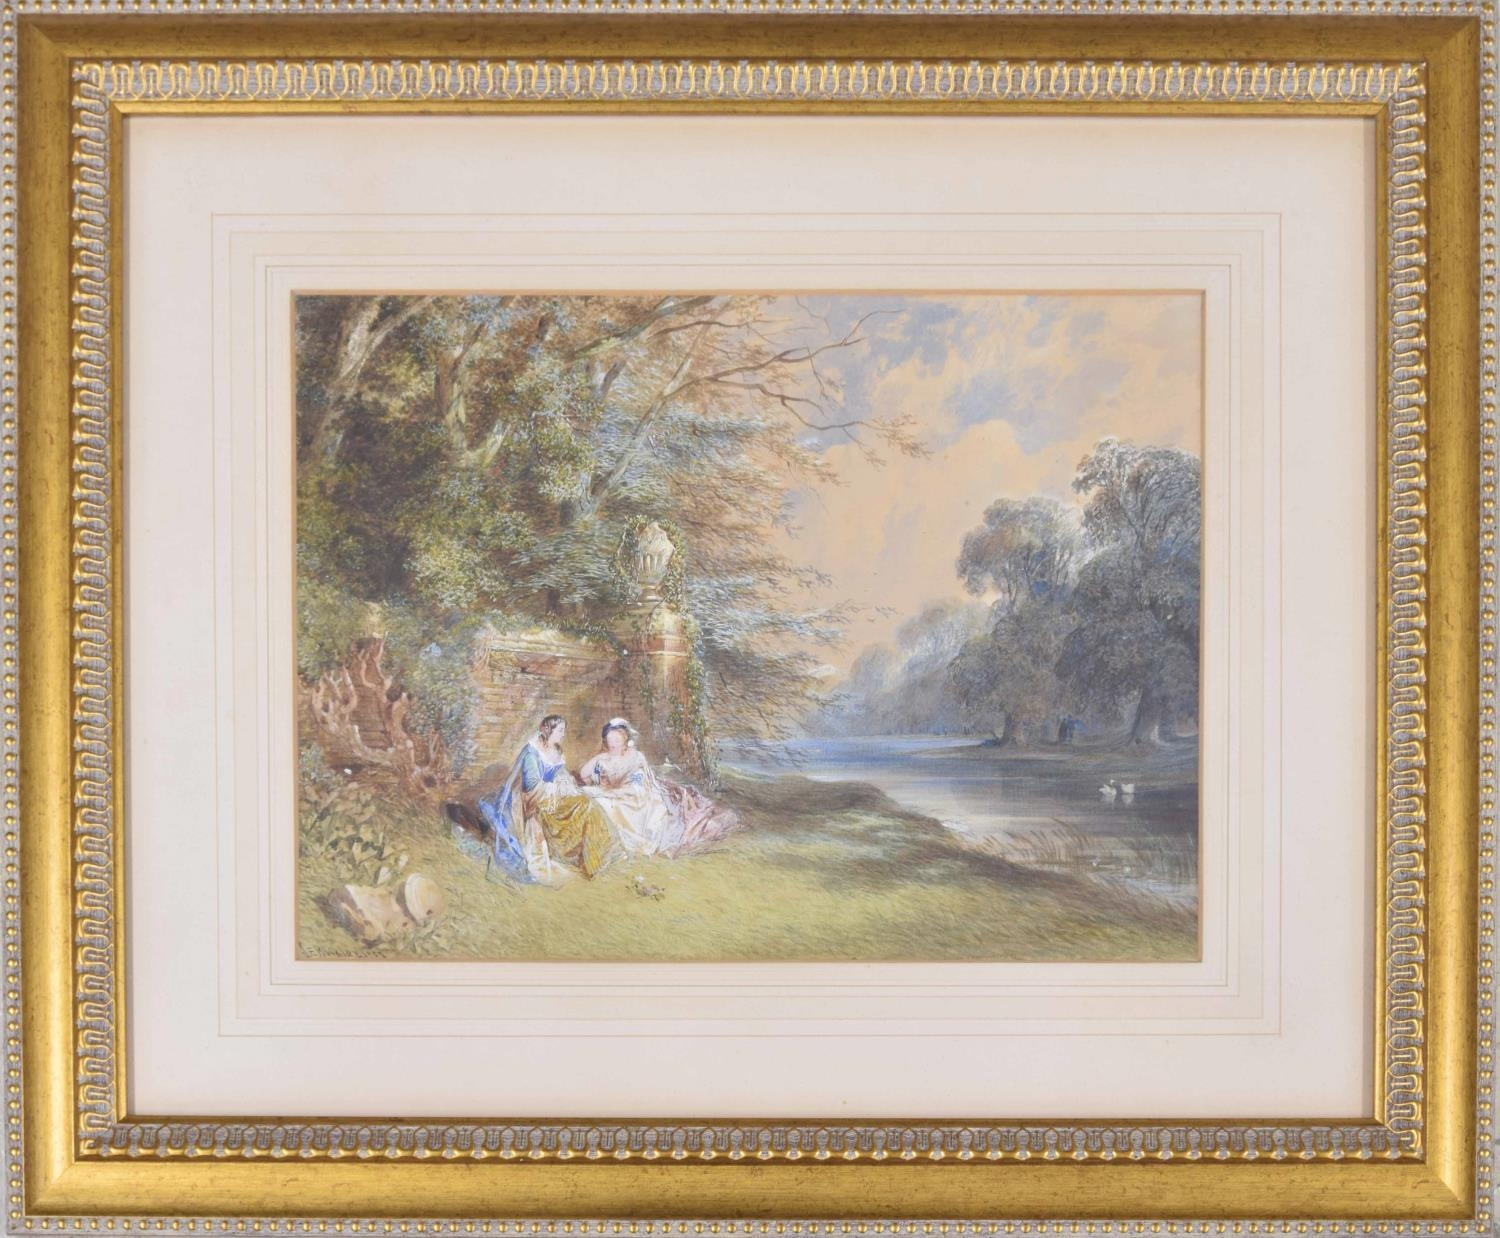 John Edmund Buckley (1824-1876) - 'Landscape and Figures' two elegantly dressed young girls seated